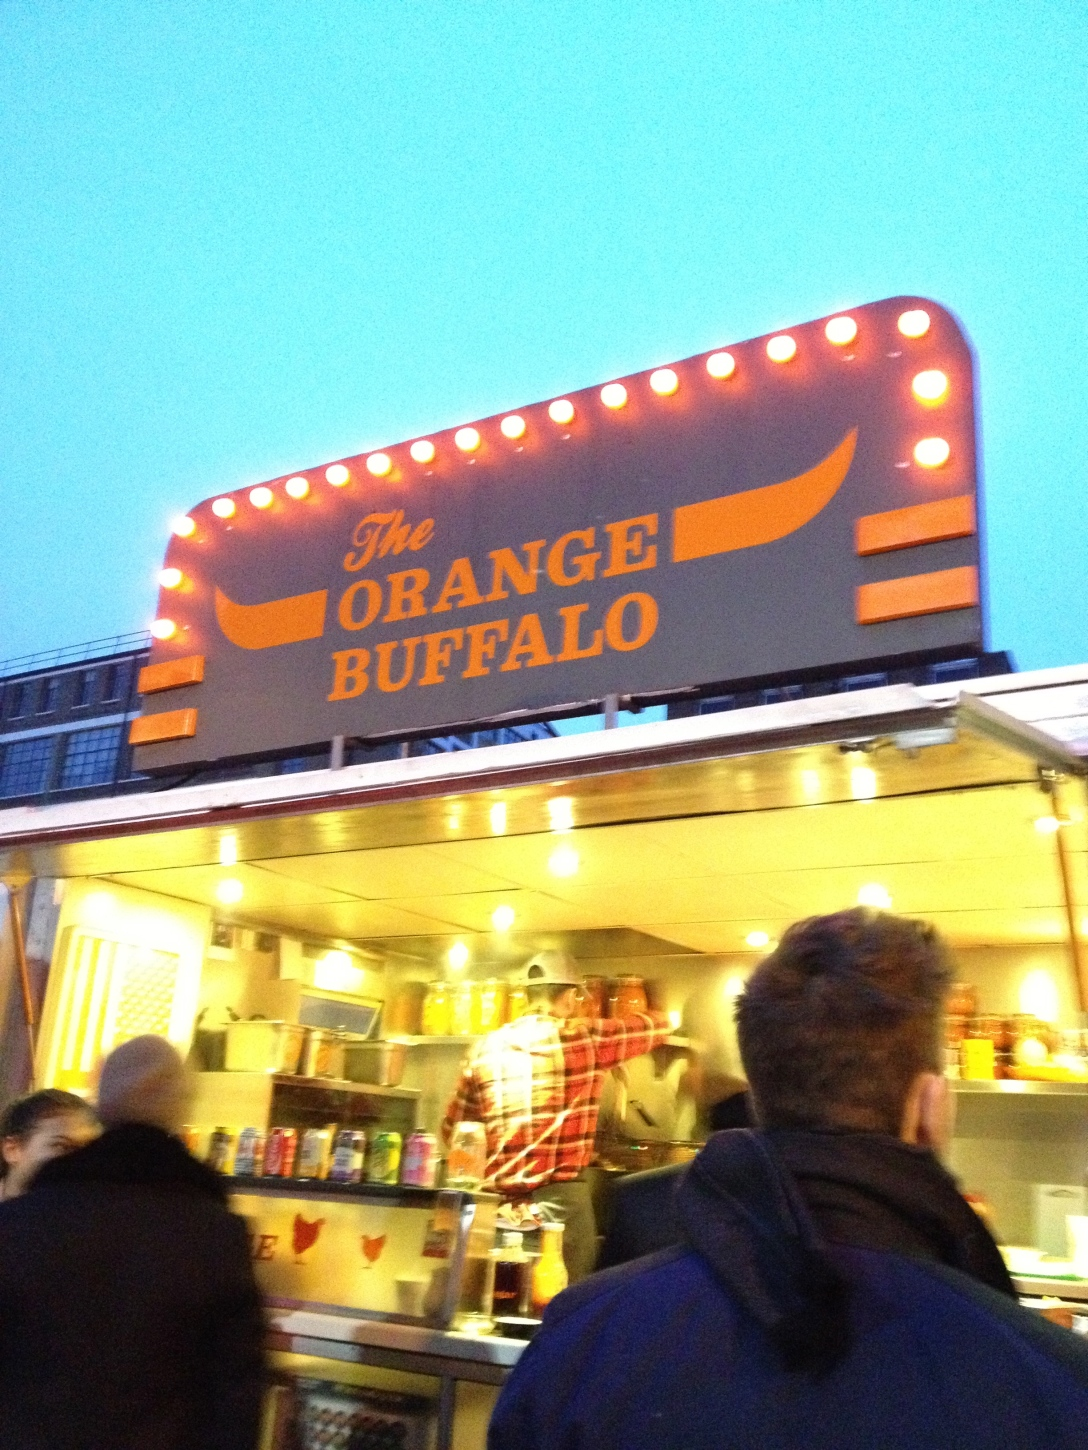 The Orange Buffalo